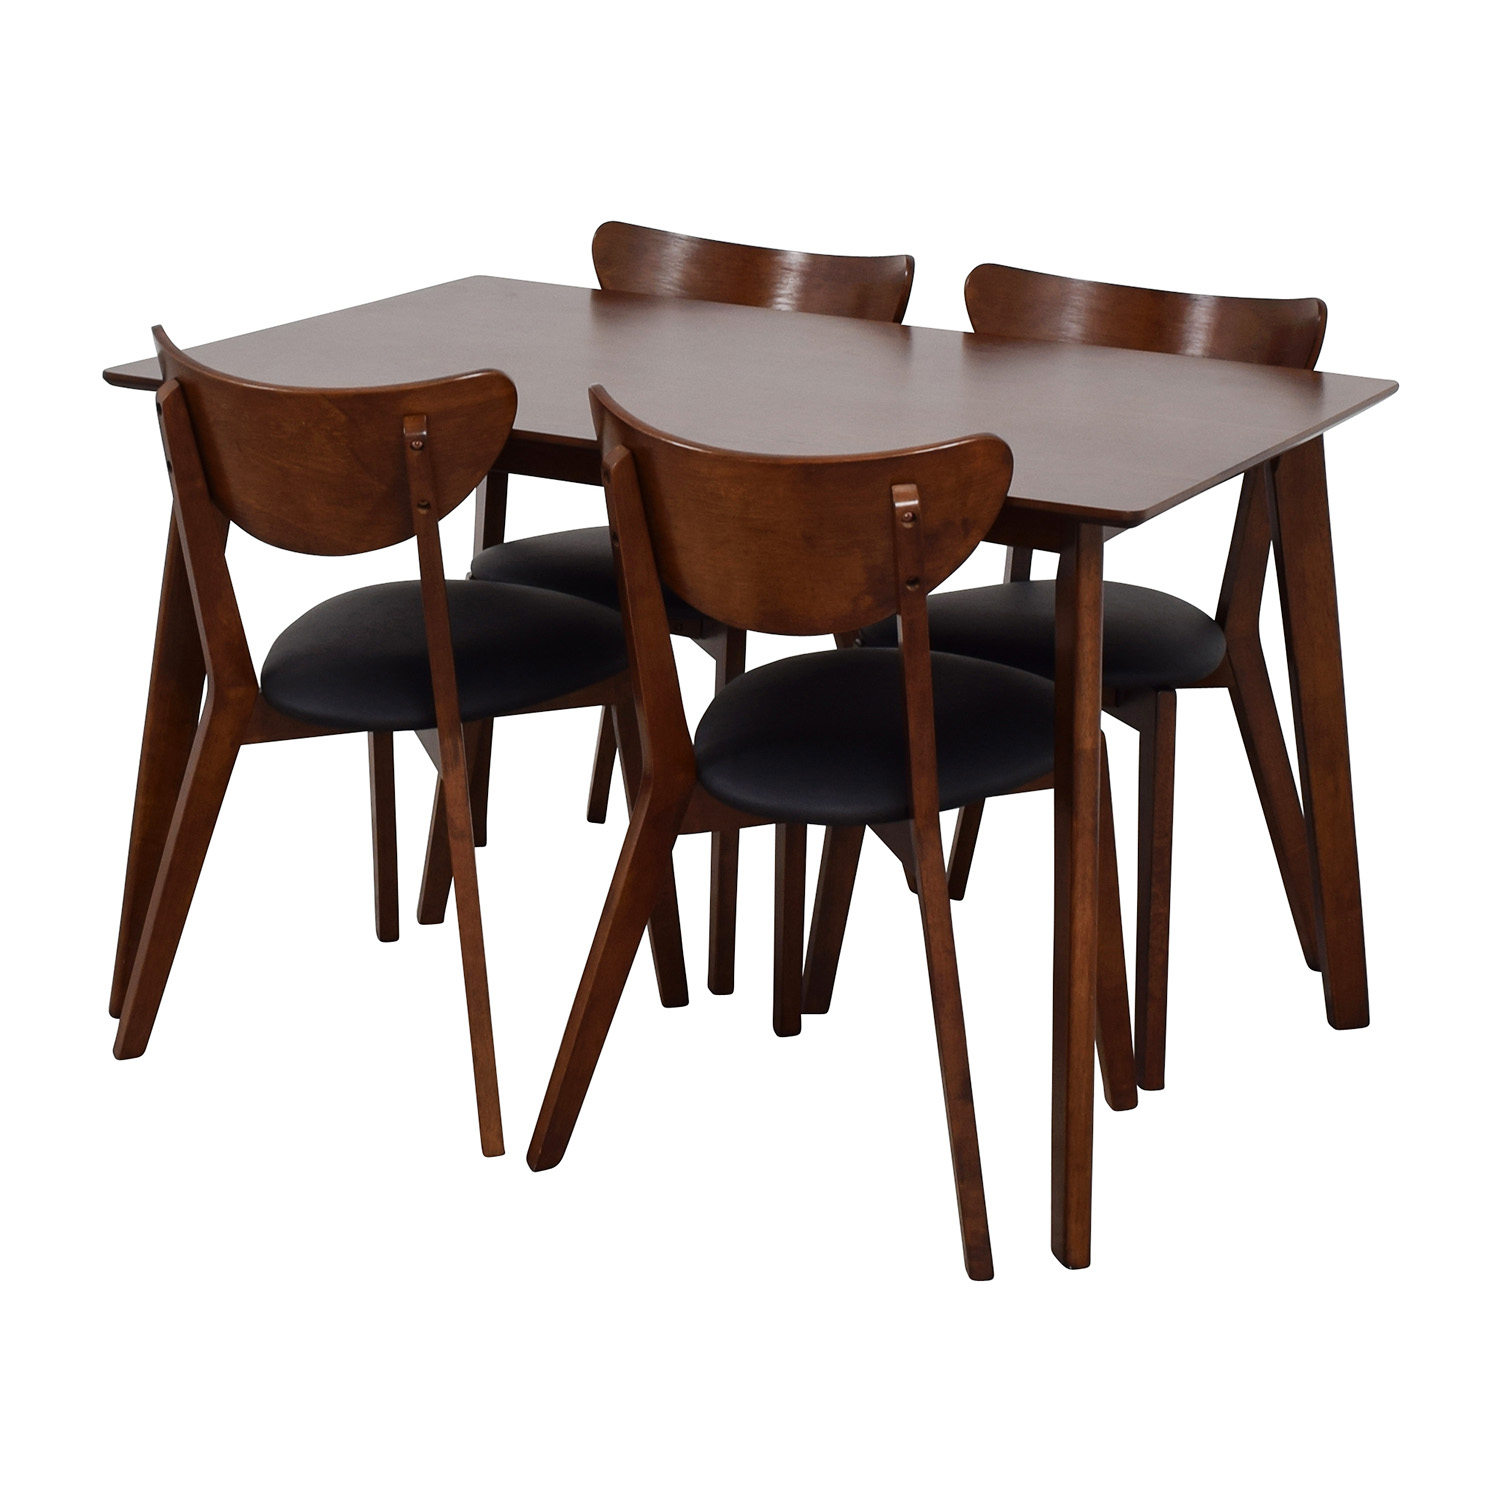 35 off wholesale interiors brown dining table set with for Four chair dining table